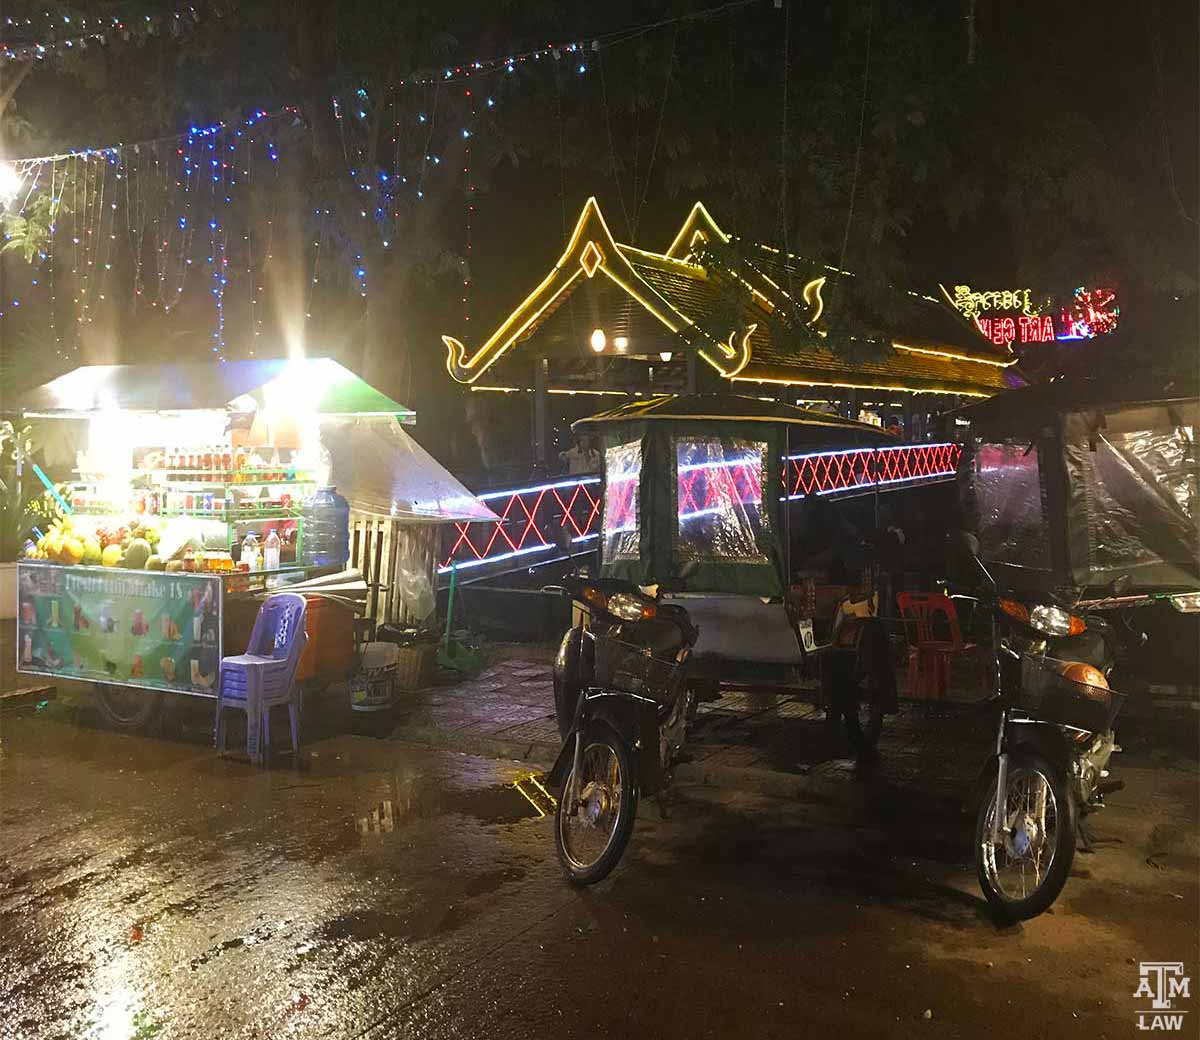 Mekong night market